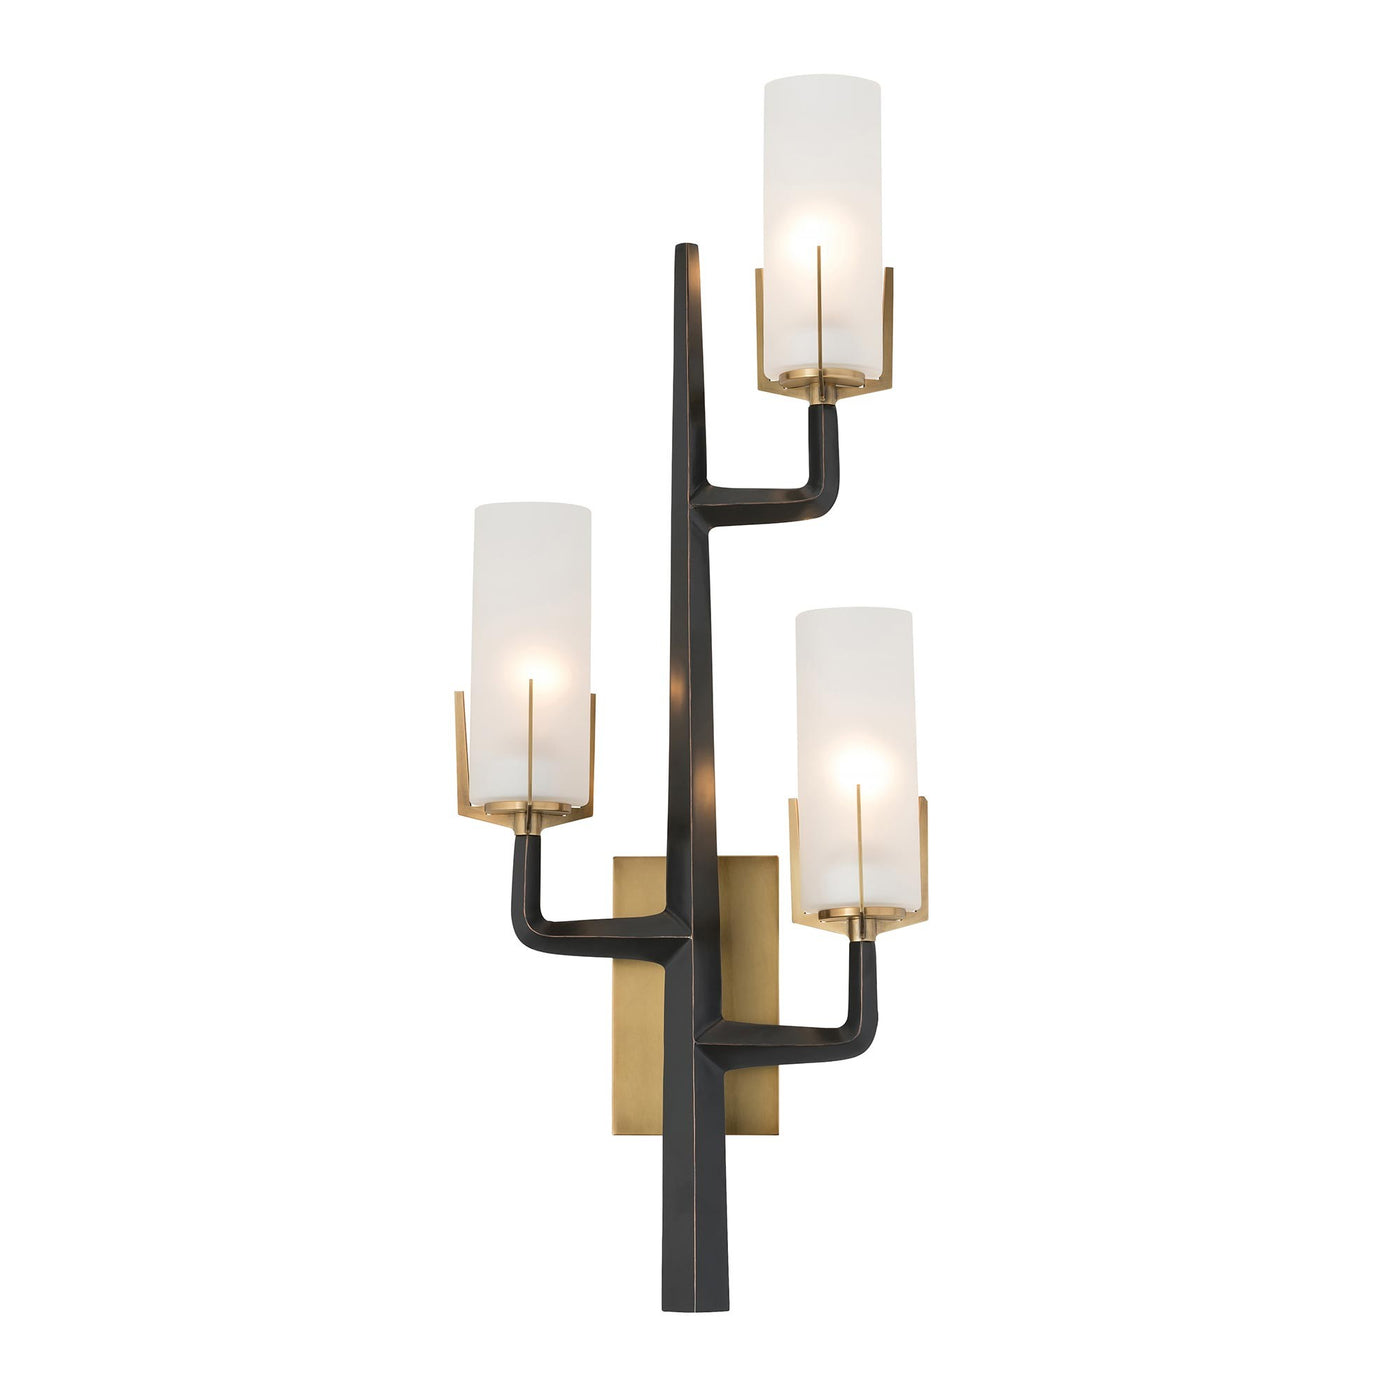 arteriors home griffin sconce black iron wall light